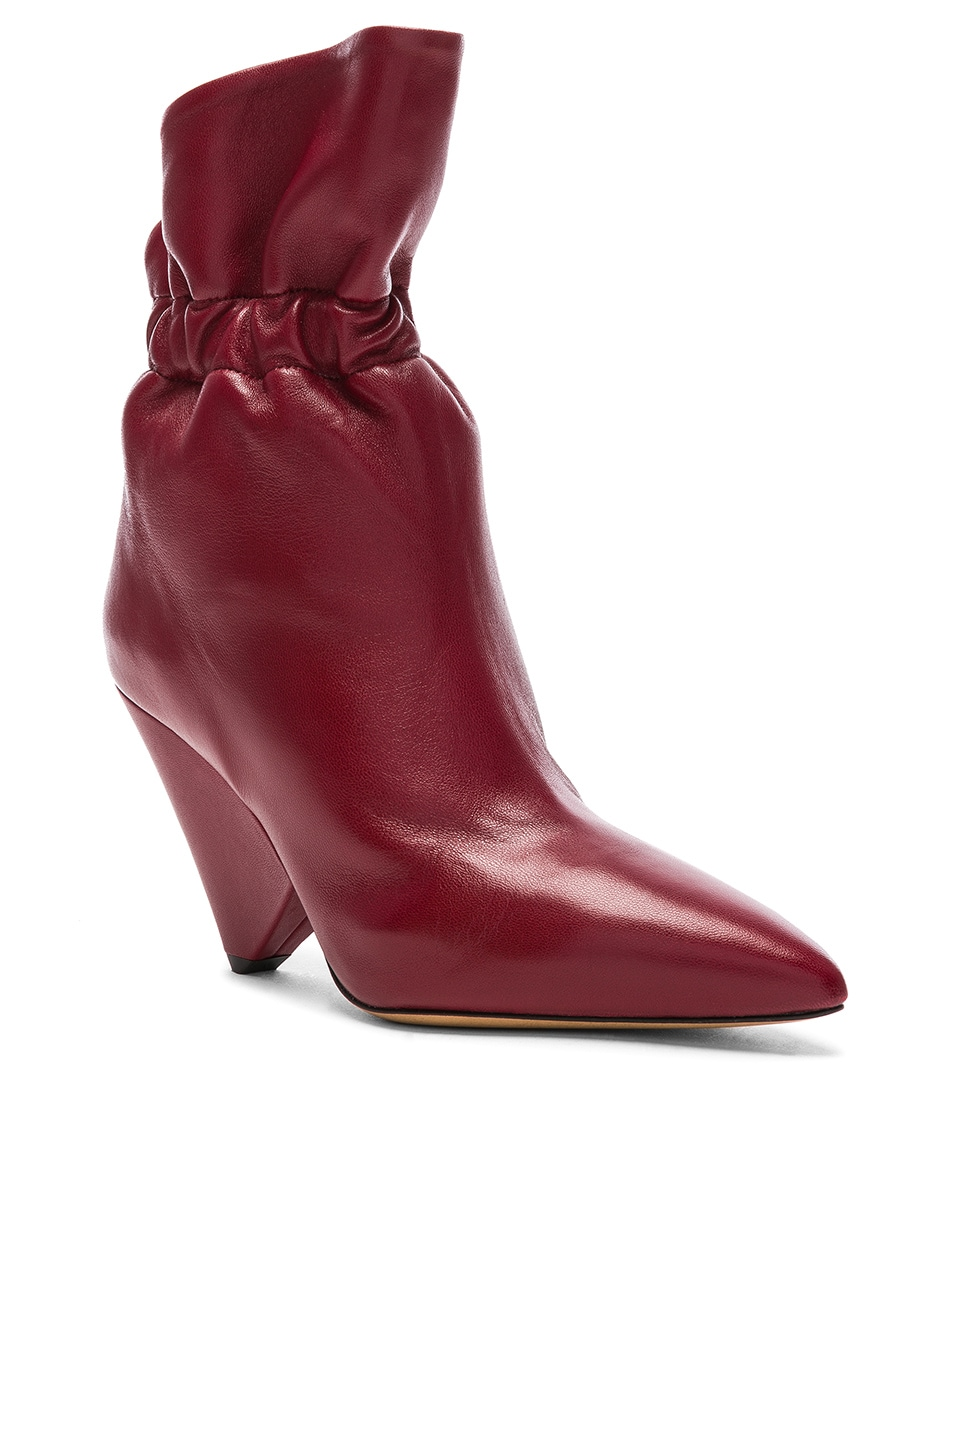 Image 2 of Isabel Marant Leather Lileas Boots in Burgundy